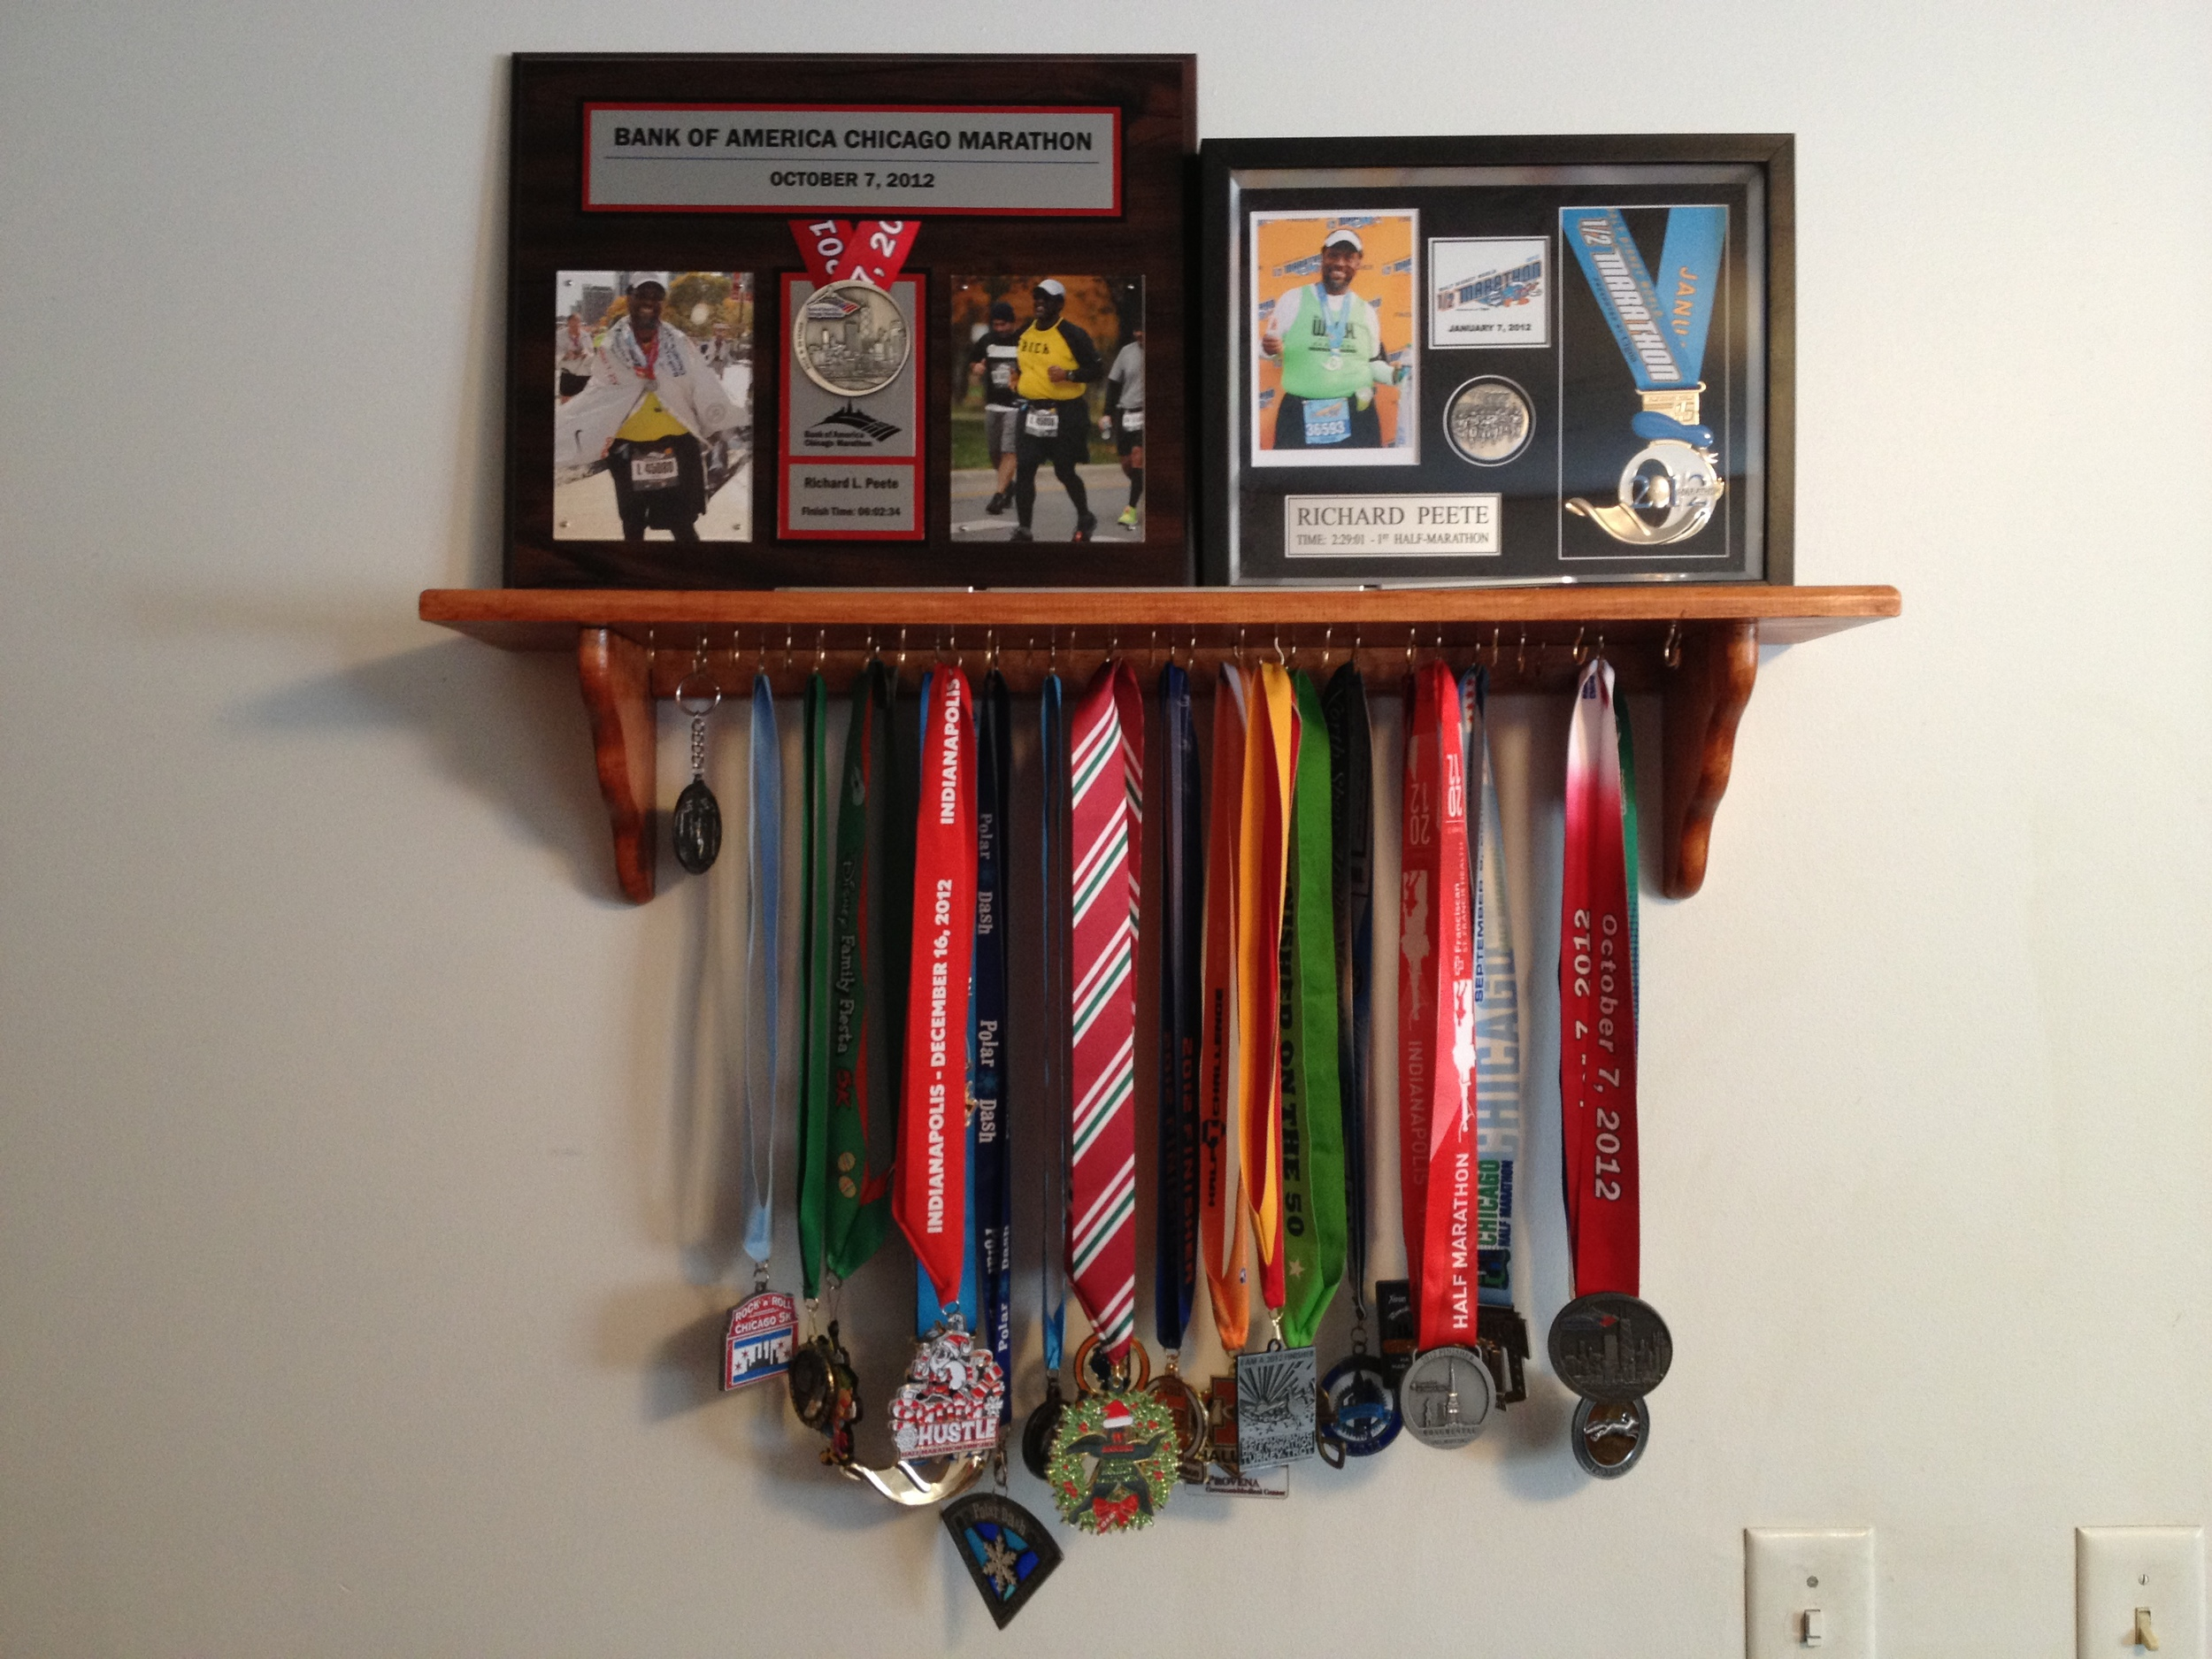 My wife made this medal rack for me as a Christmas present. It holds all my medals from 2011-2012 with room for 2013 I hope.